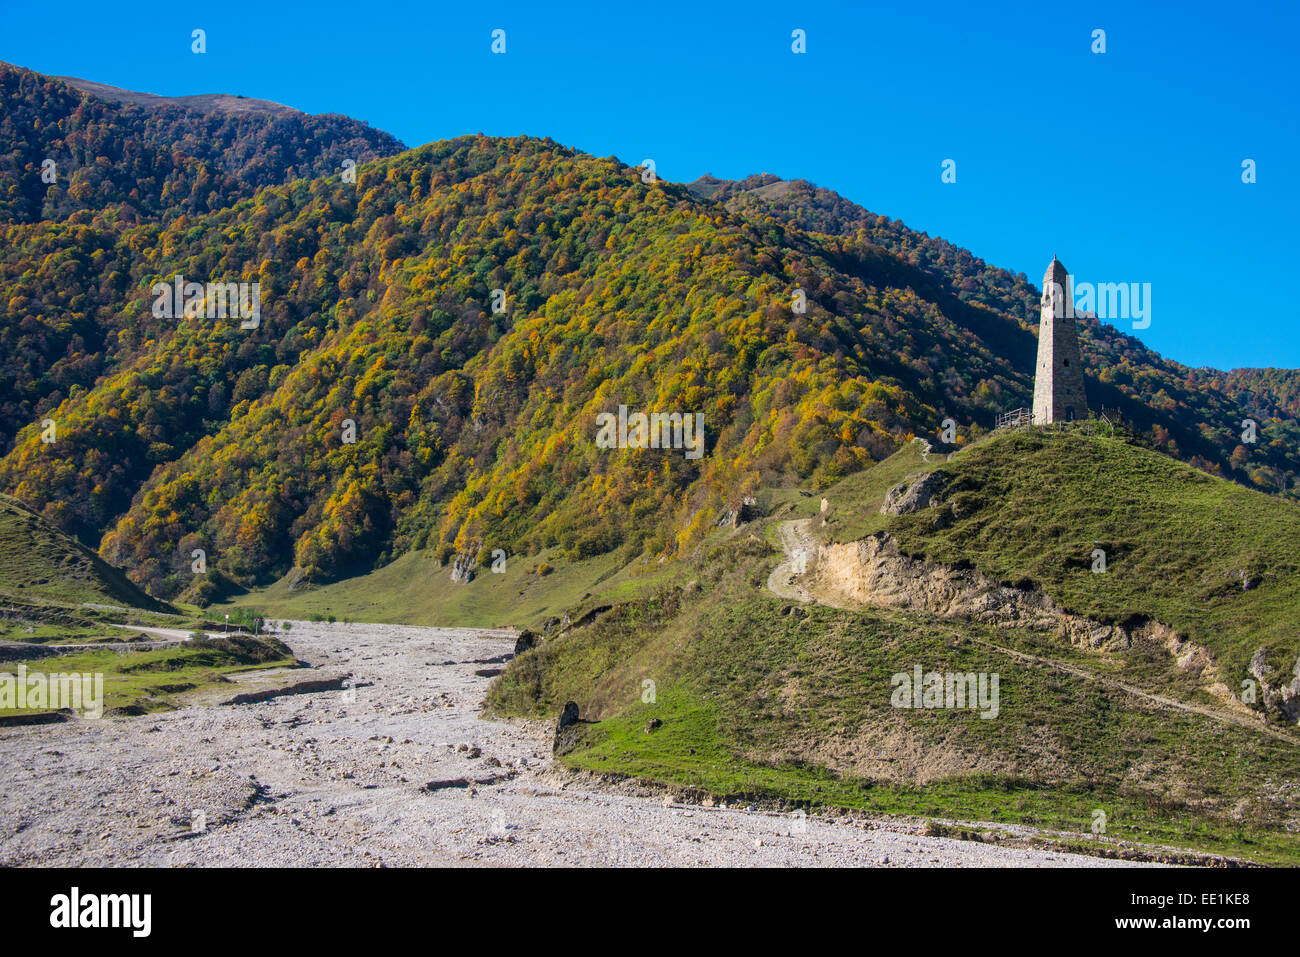 Watchtower in the Chechen Mountains, Chechnya, Caucasus, Russia, Europe Stock Photo